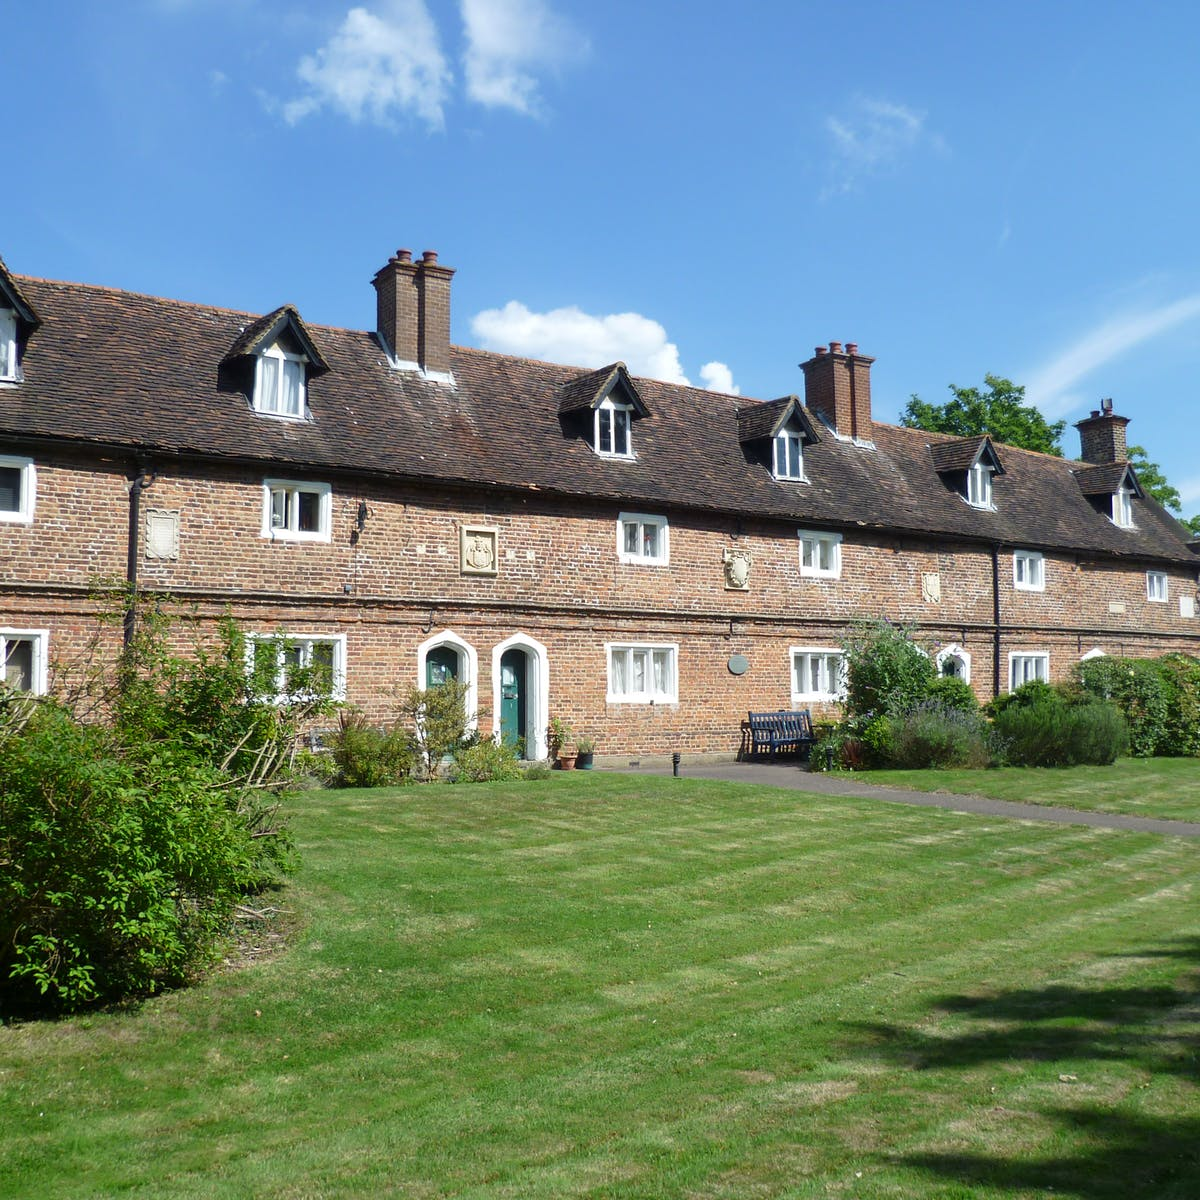 Almshouses Charity Housing Is Resurging But This Is Not Something To Be Celebrated